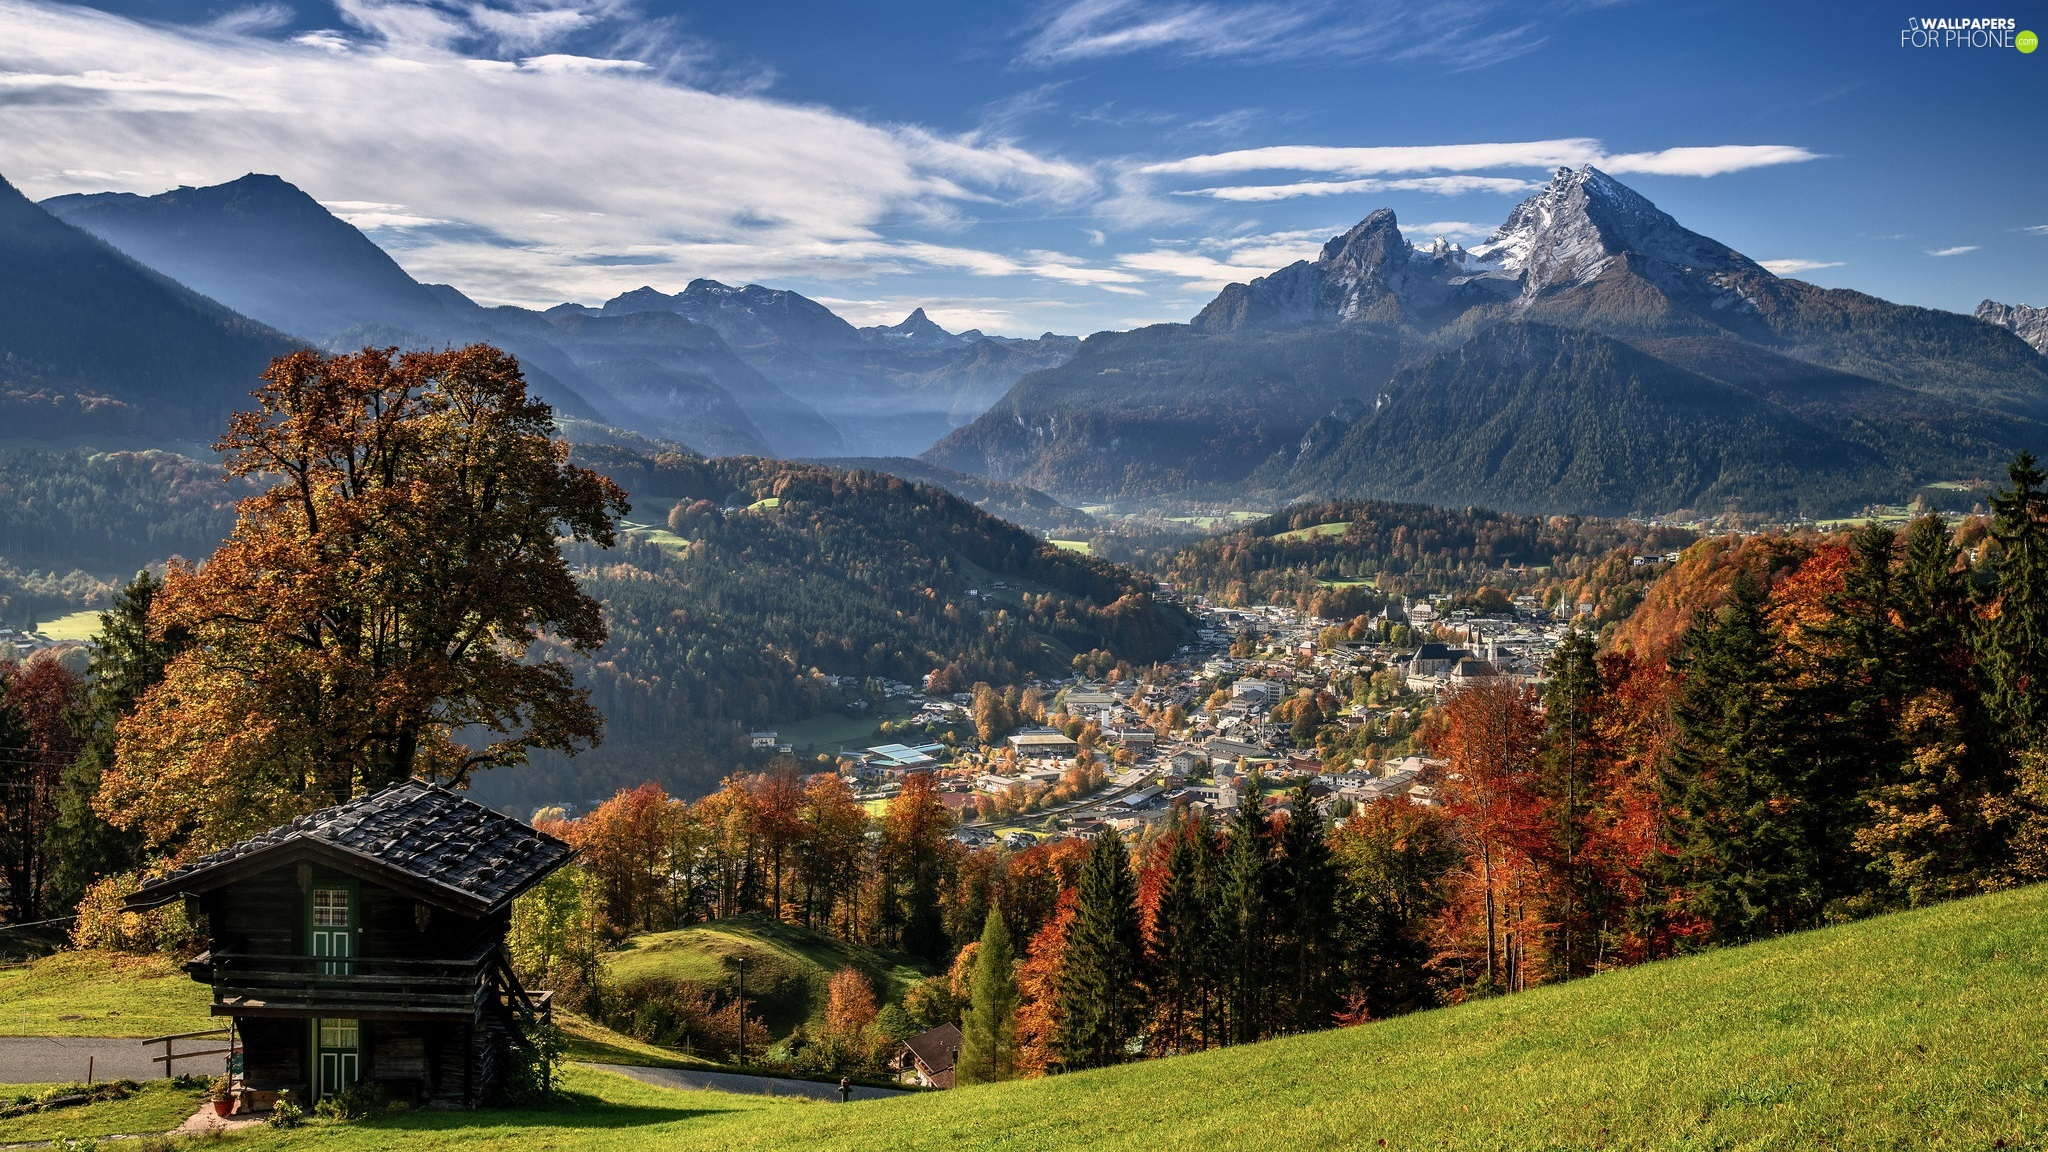 Houses, Mountains, trees, Valley, autumn, Town, viewes